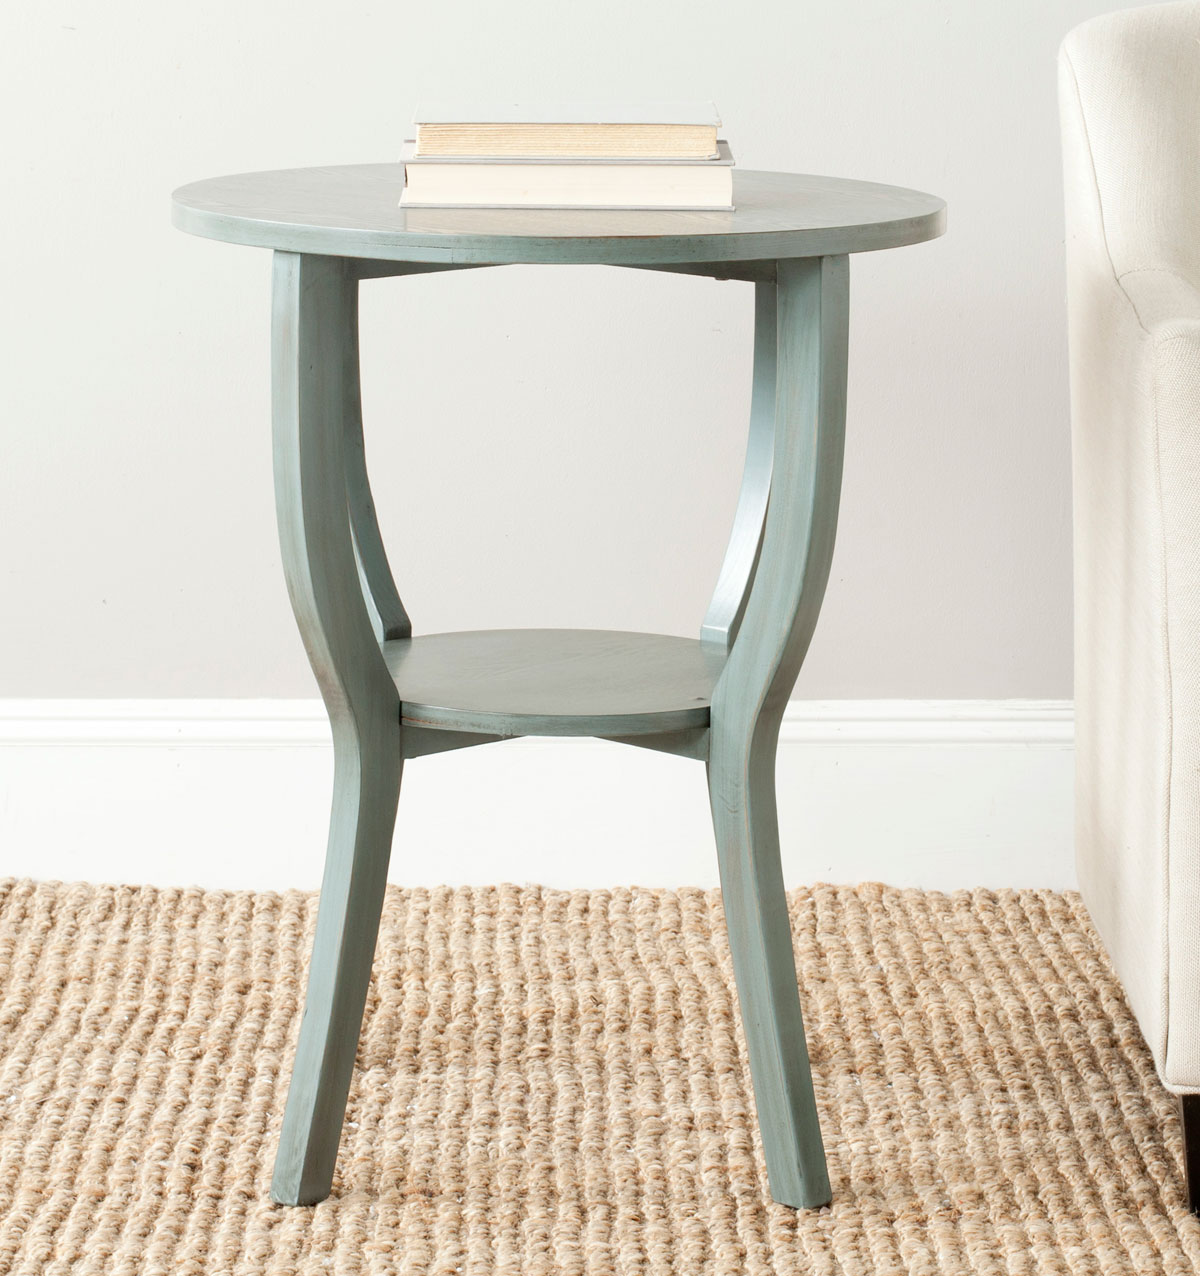 accent tables furniture safavieh room round pedestal table share this product barn kitchen free coffee long skinny sofa target turquoise lamp oval decor small metal garden side